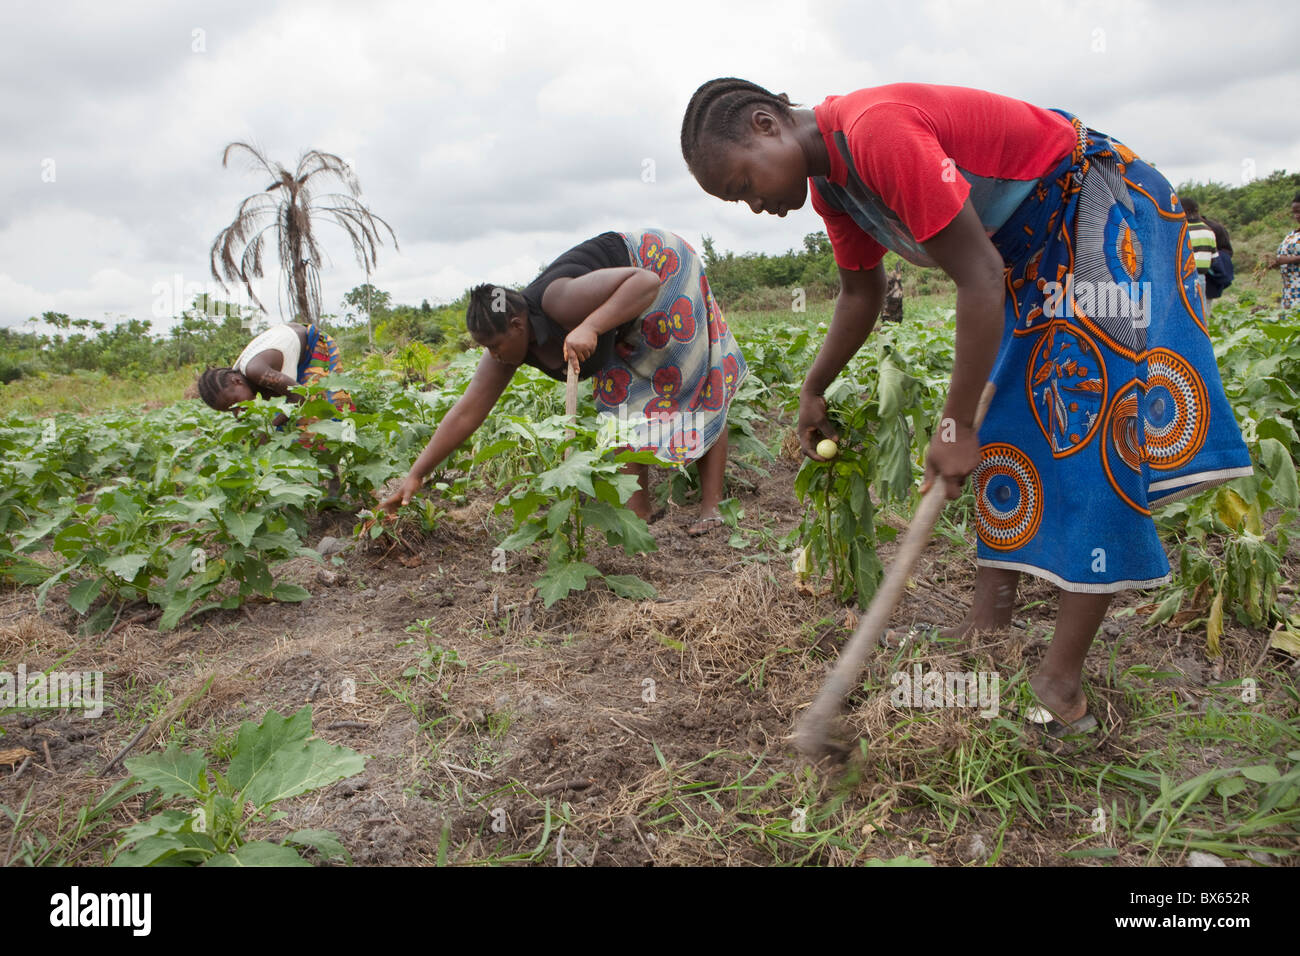 Farmers work in a vegetable field in Kakata, Liberia, West Africa. - Stock Image